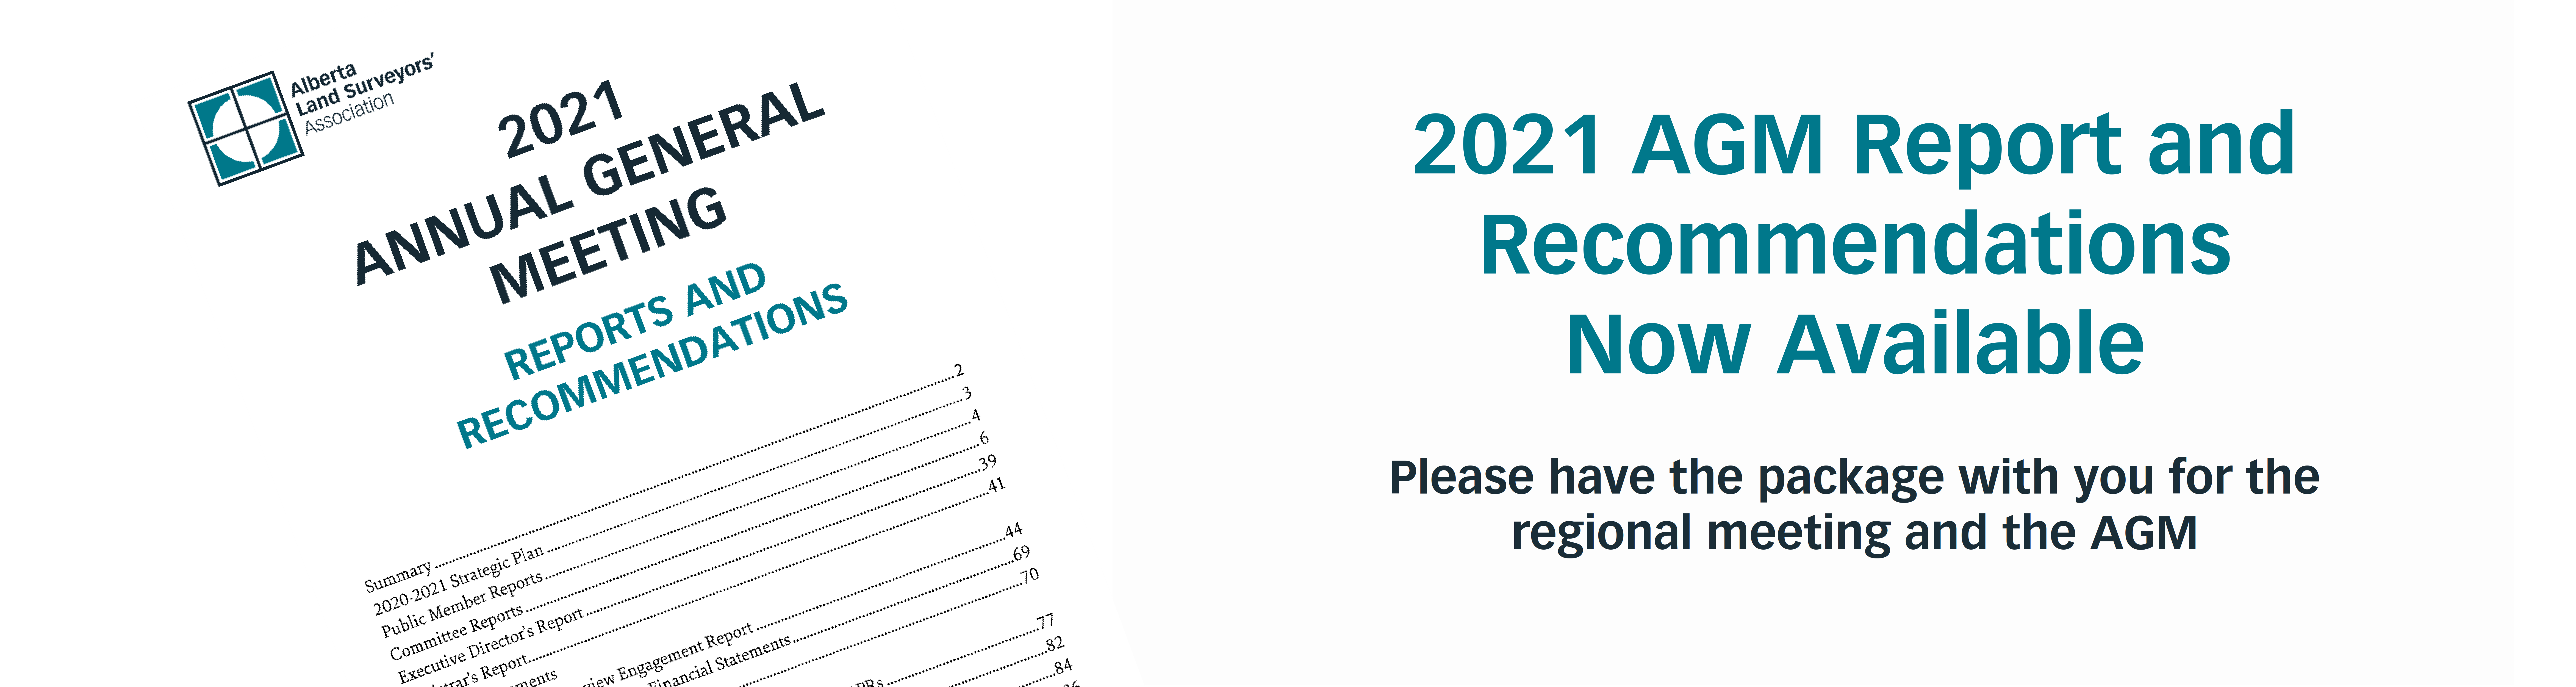 2021_Reports_Recommendations